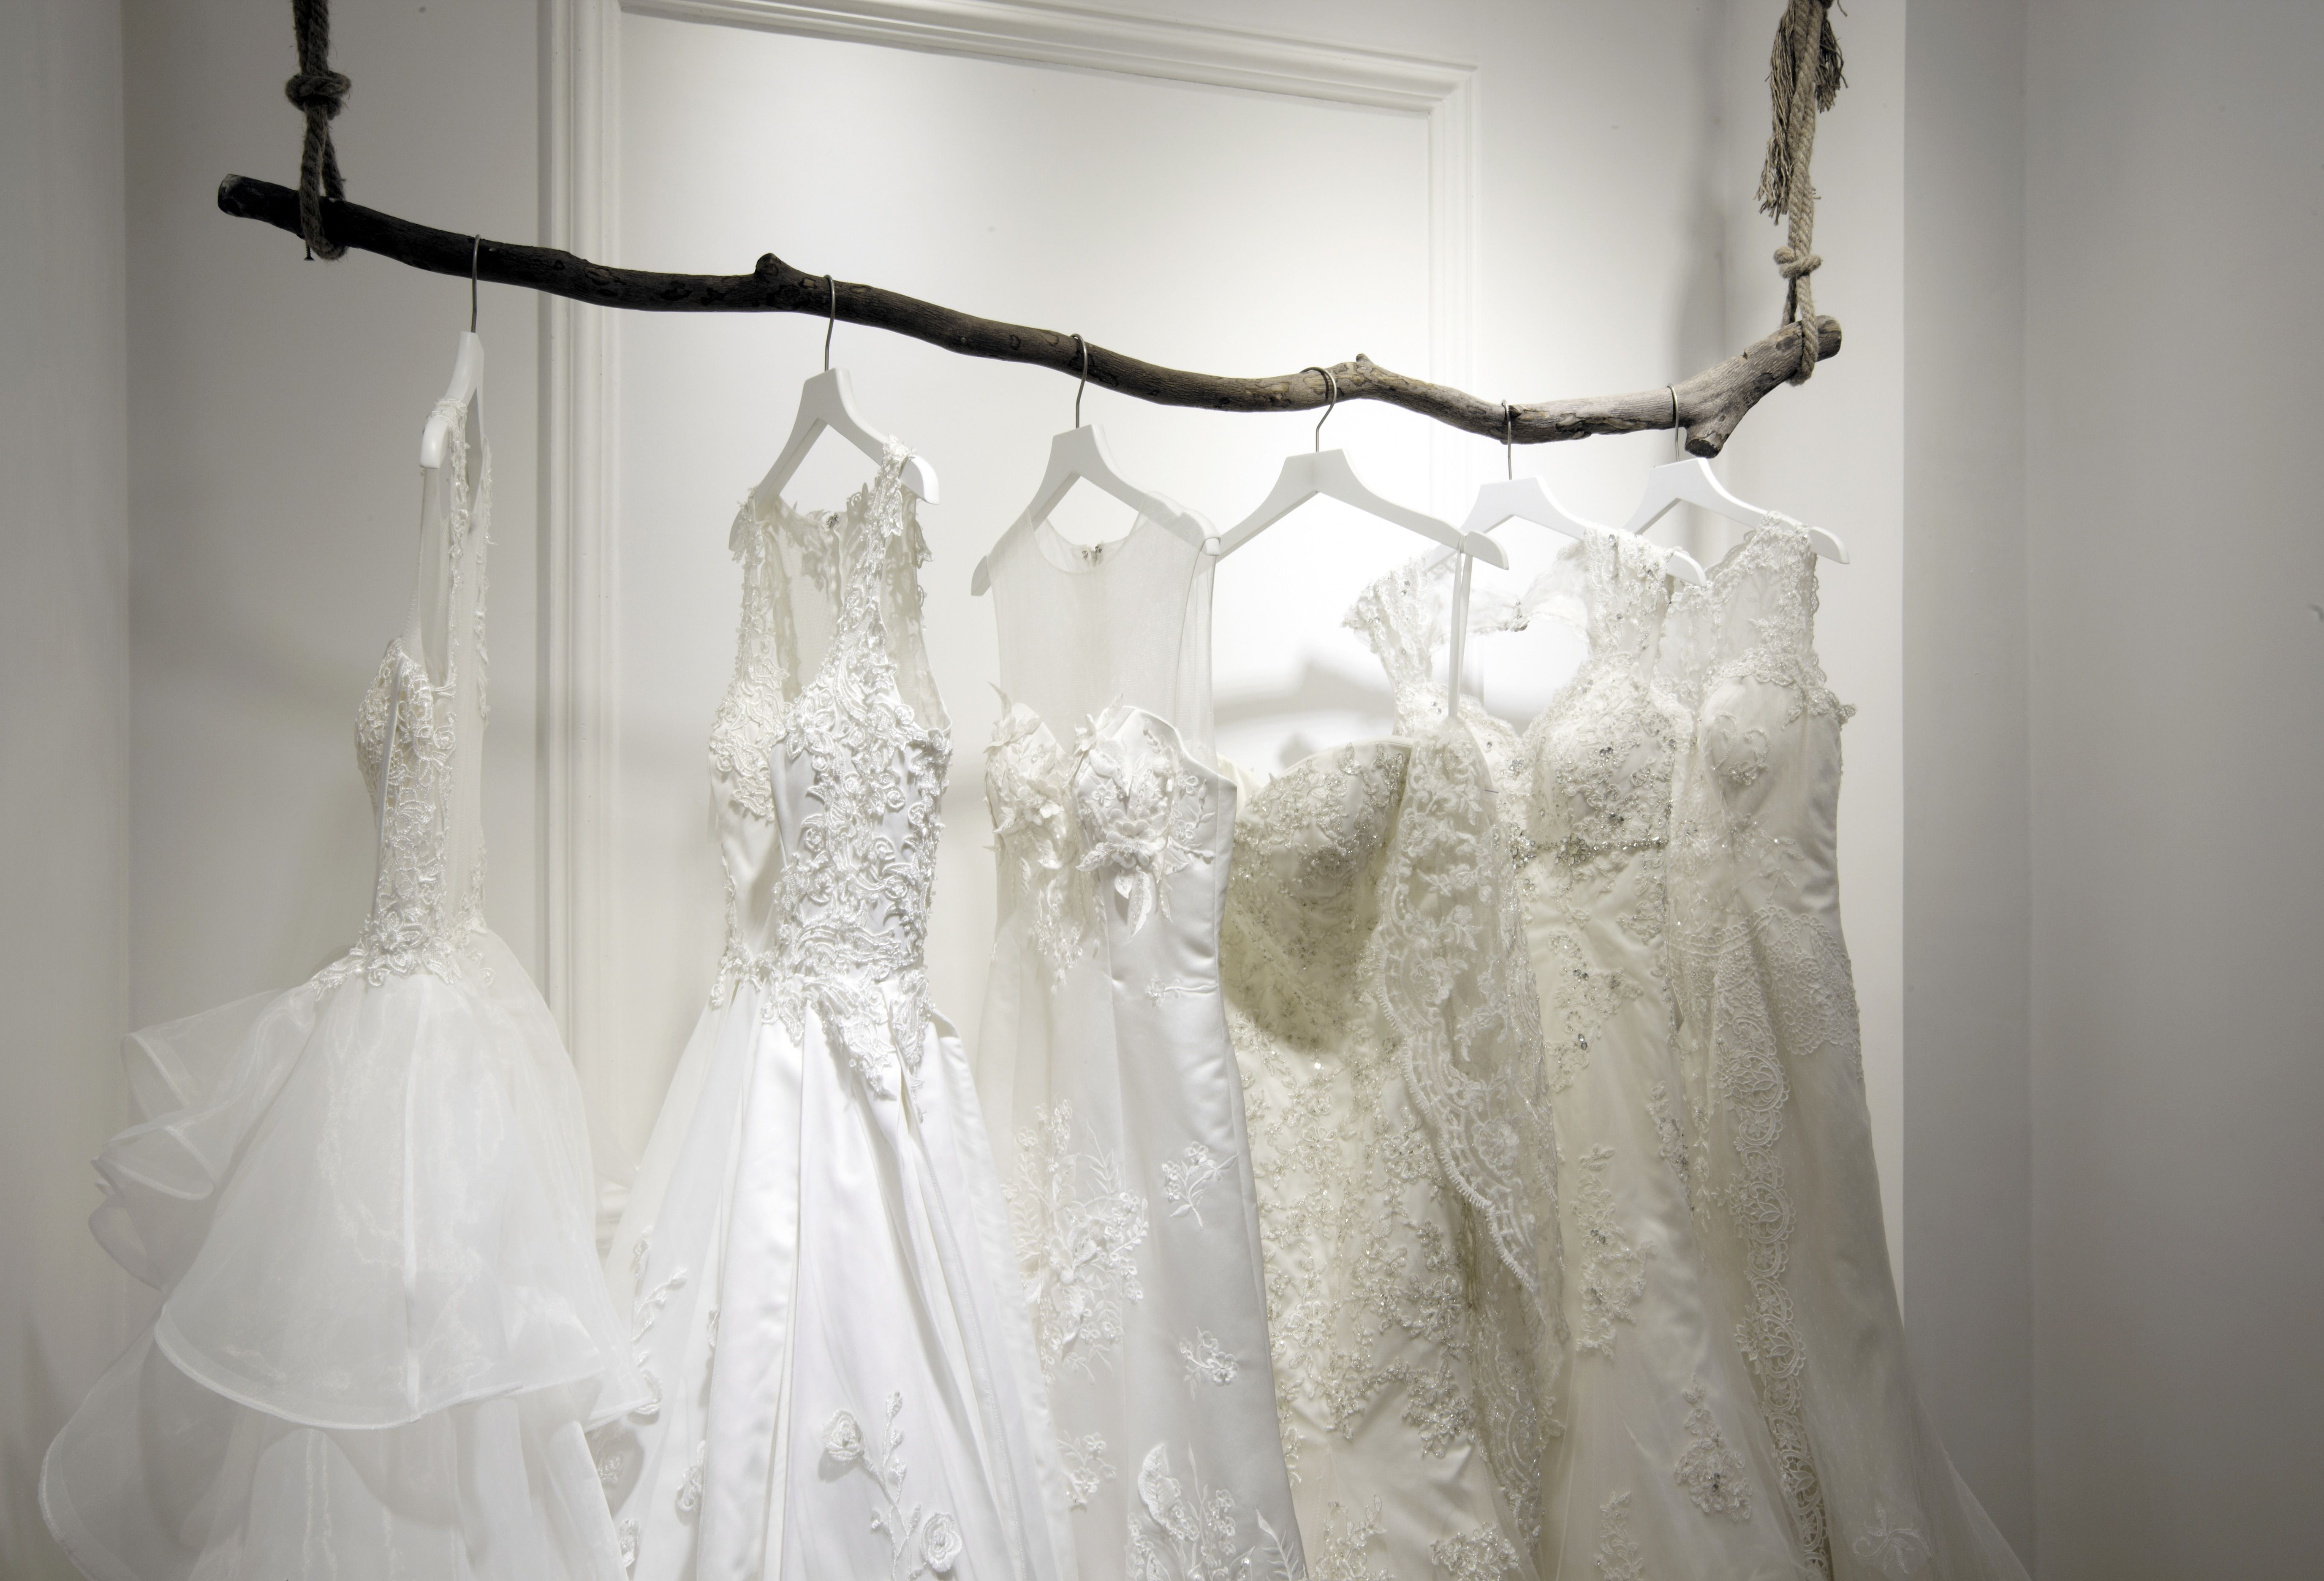 Wedding Dress Shopping 101: Everything You Need To Know Before You ...